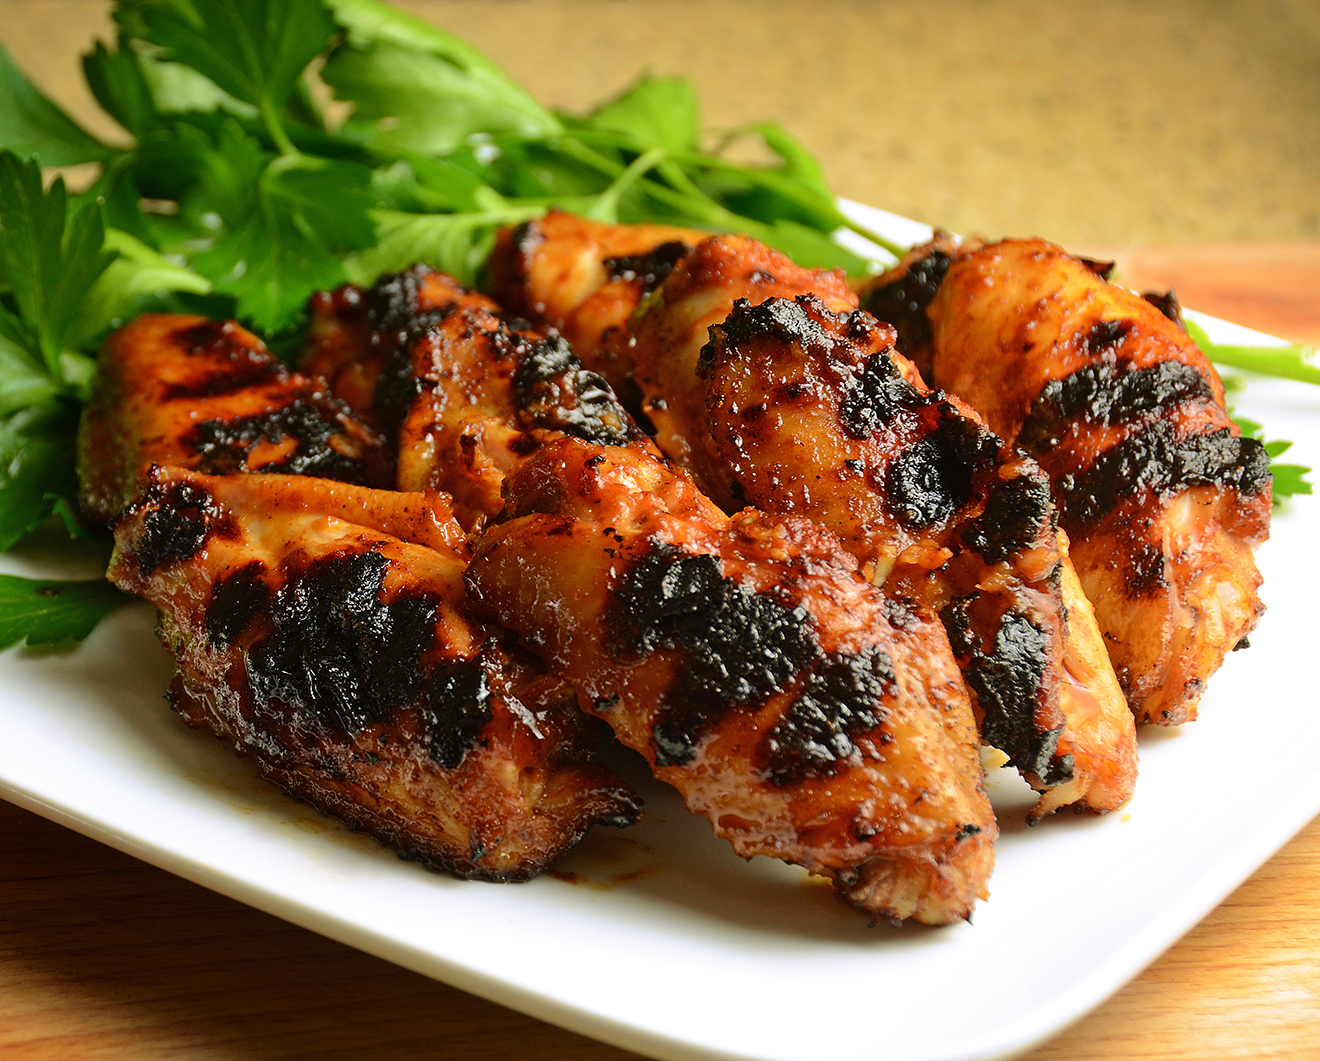 Grilled chicken stacked neatly with greens.